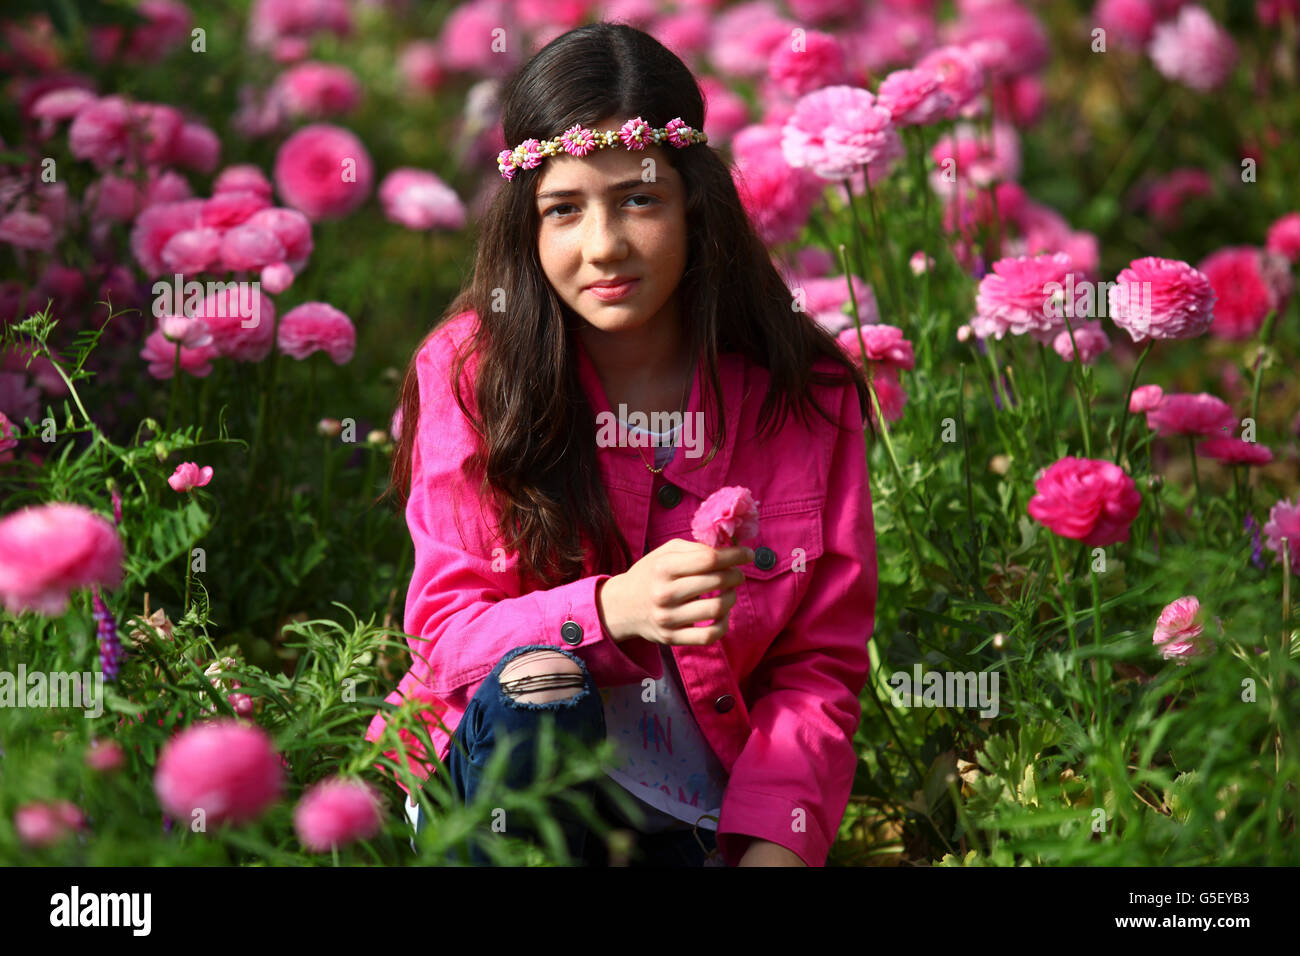 Young preteen girl of 12 in a hothouse of pink flowers Stock Photo